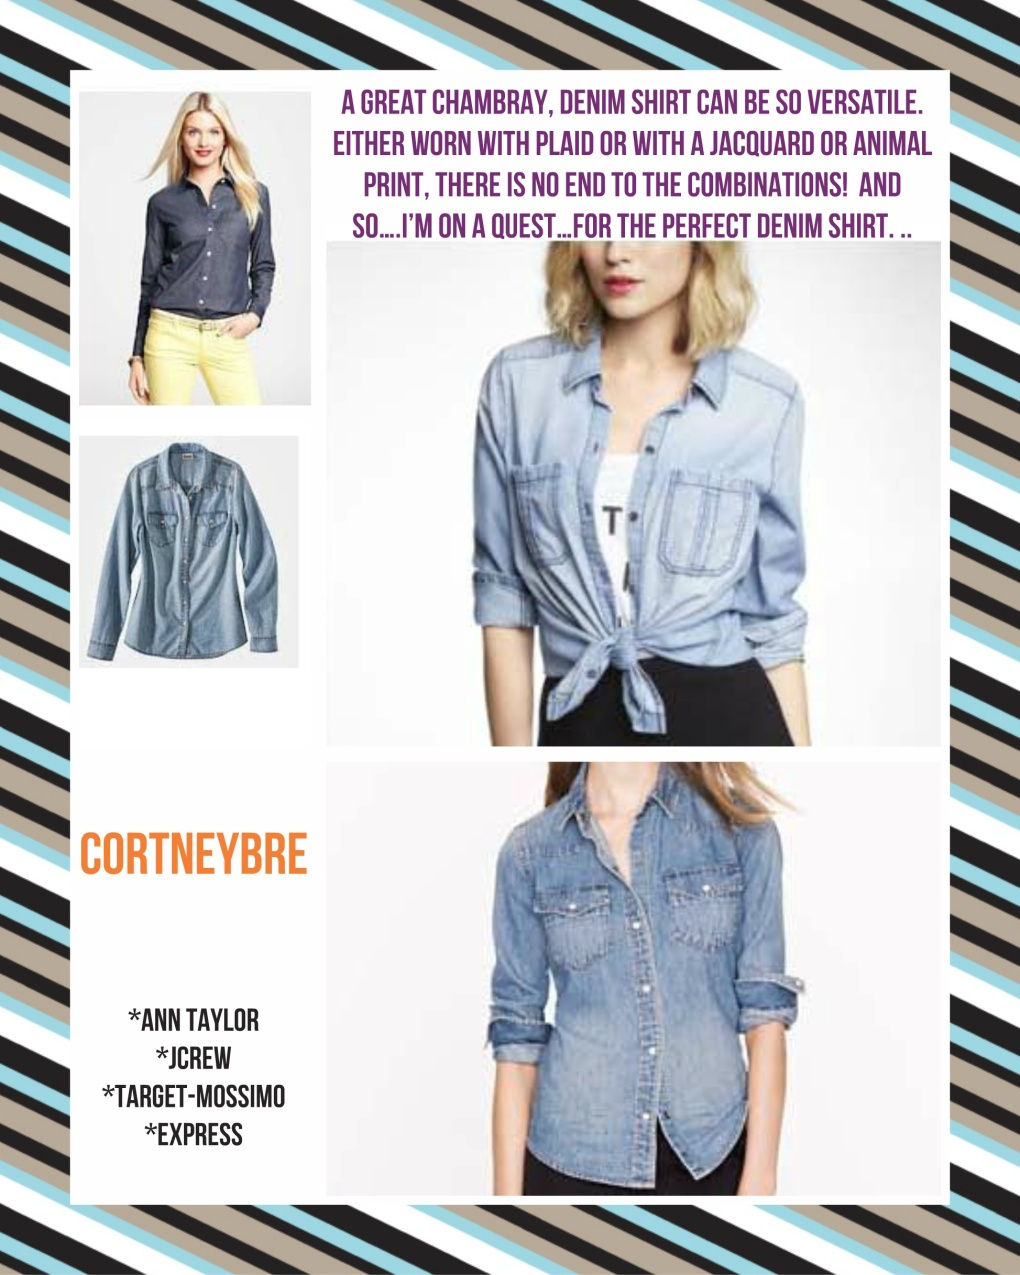 Top left: Ann Taylor Bottom left: Target-Mossimo Top right: Express Bottom right: JCrew